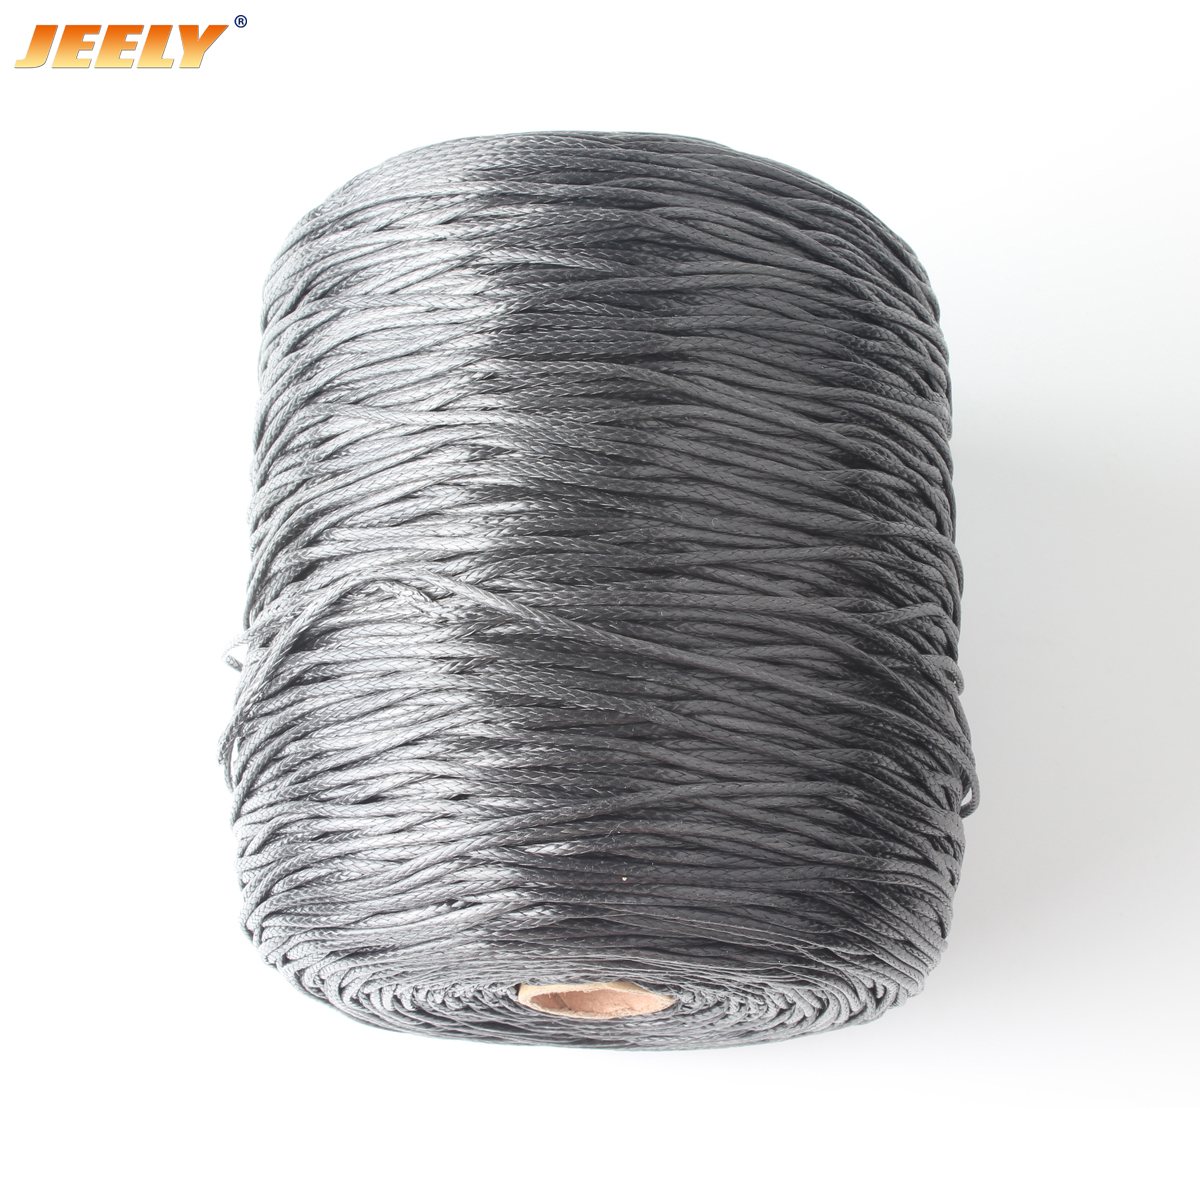 Jeely 1000M 1mm 6 Weaves Braided Towing Winch Line Spectra winch Rope 220lbs